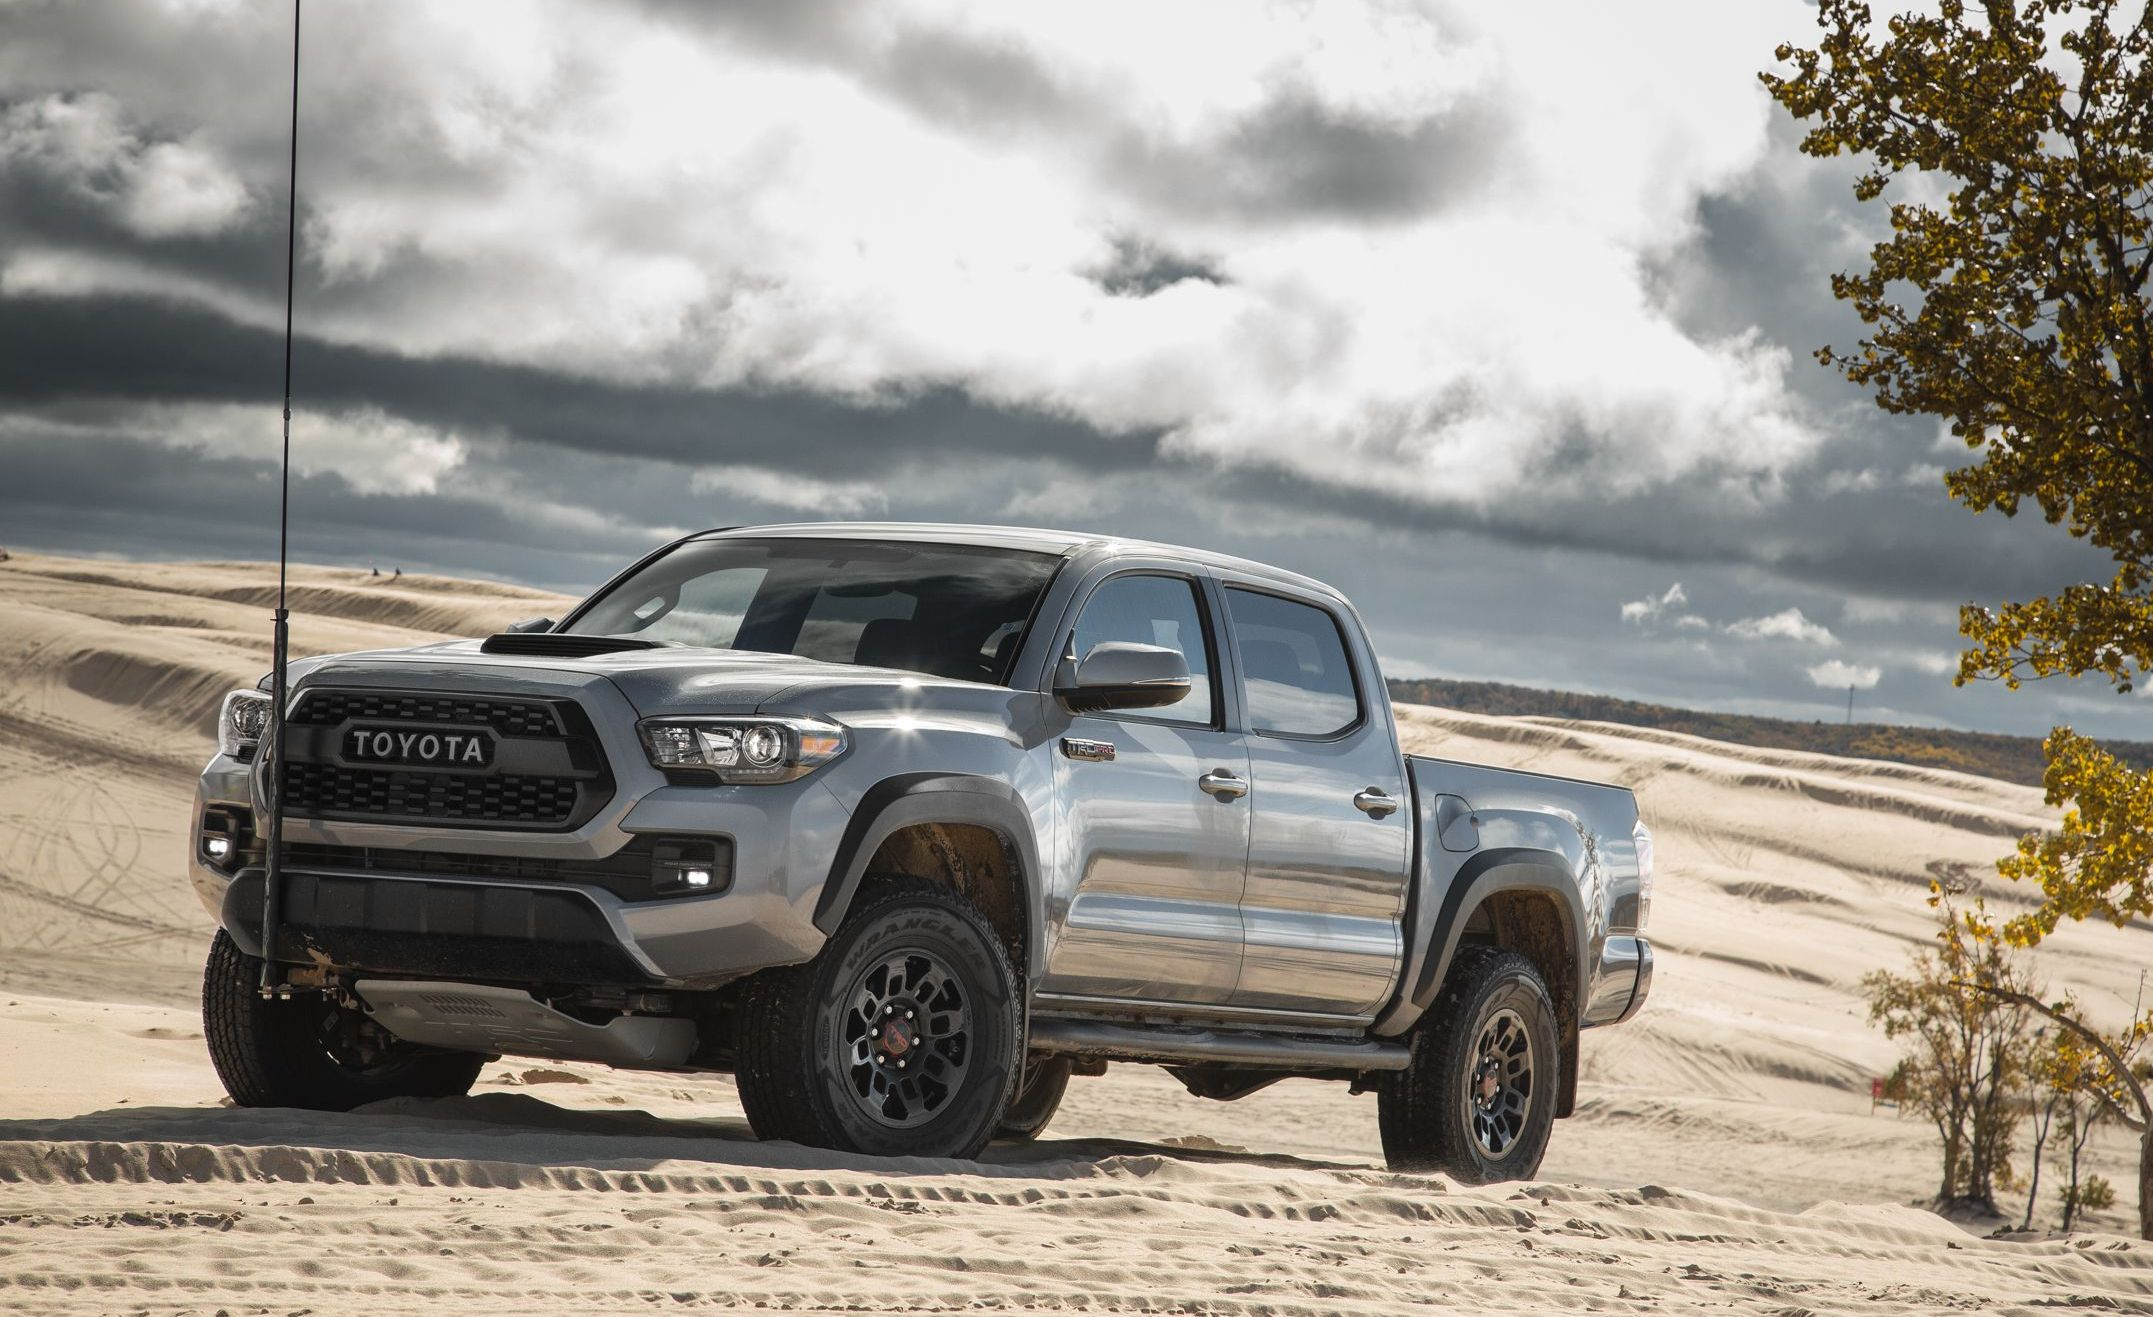 7 Best New Mid-Size Pickup Trucks of 2019 - All Mid-Size ...